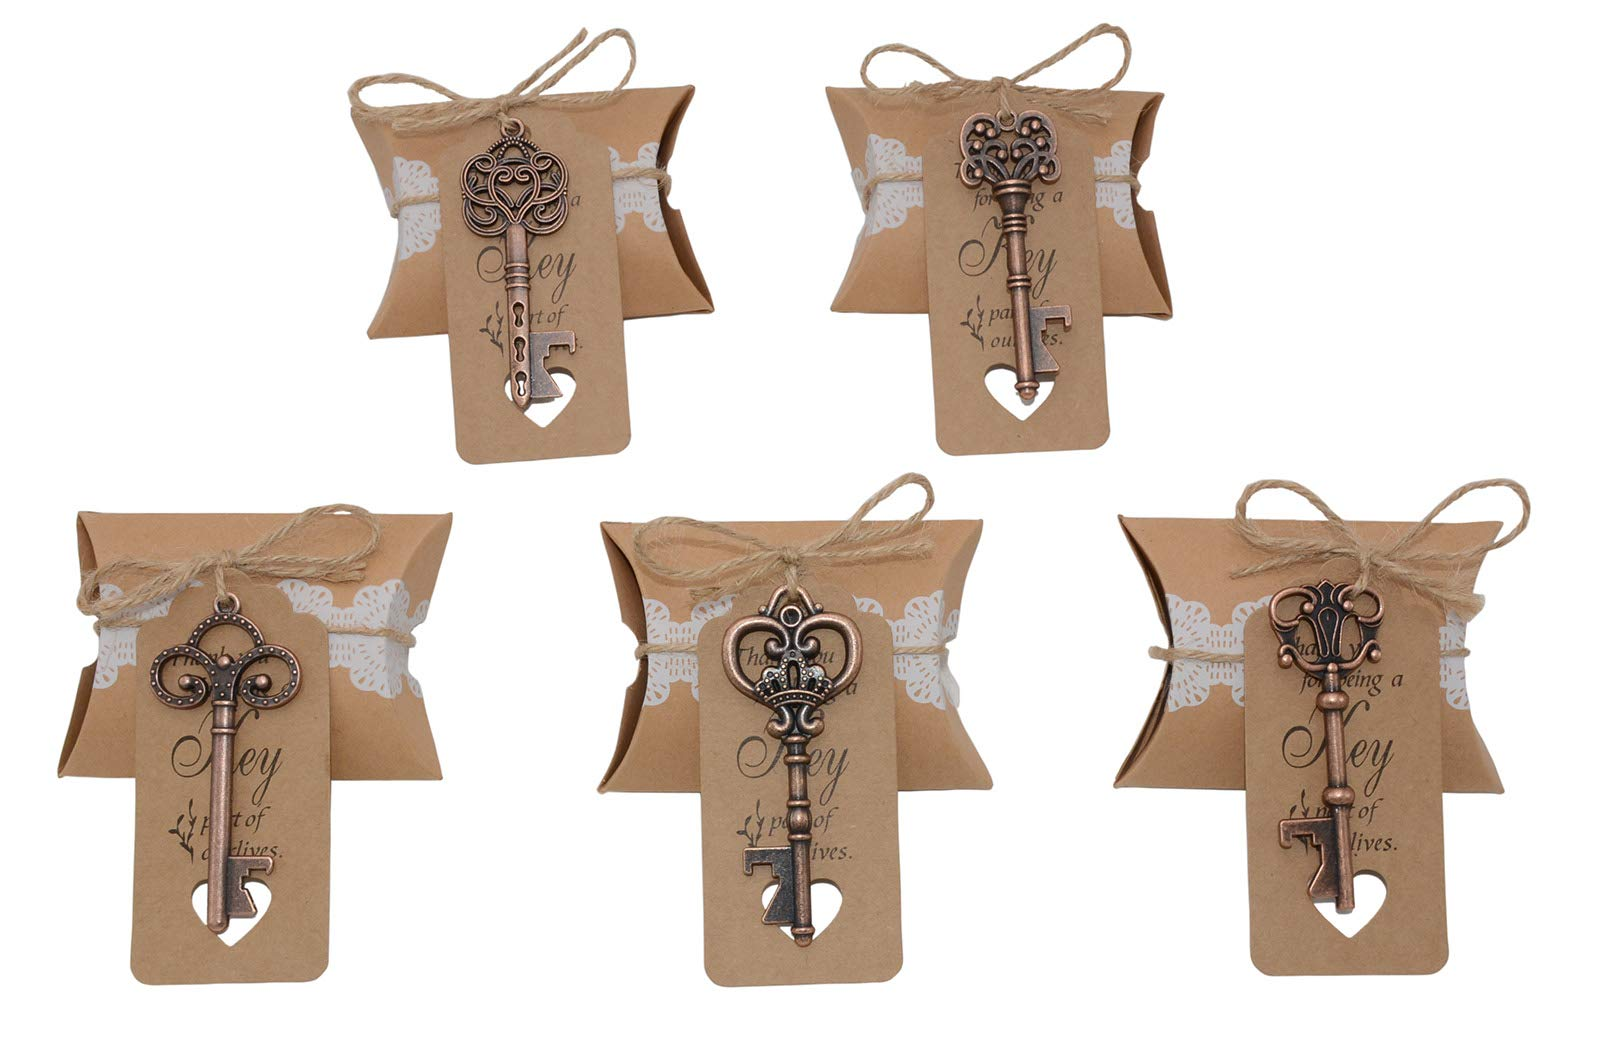 Wedding Favors for Guests 100 Pack Mixed Large Skeleton Key Bottle Openers (Copper) with Tag and Pillow Candy Box and Twine Vintage Bridal Shower Favors Bottle Openers (100 pack copper) by YYaaloa